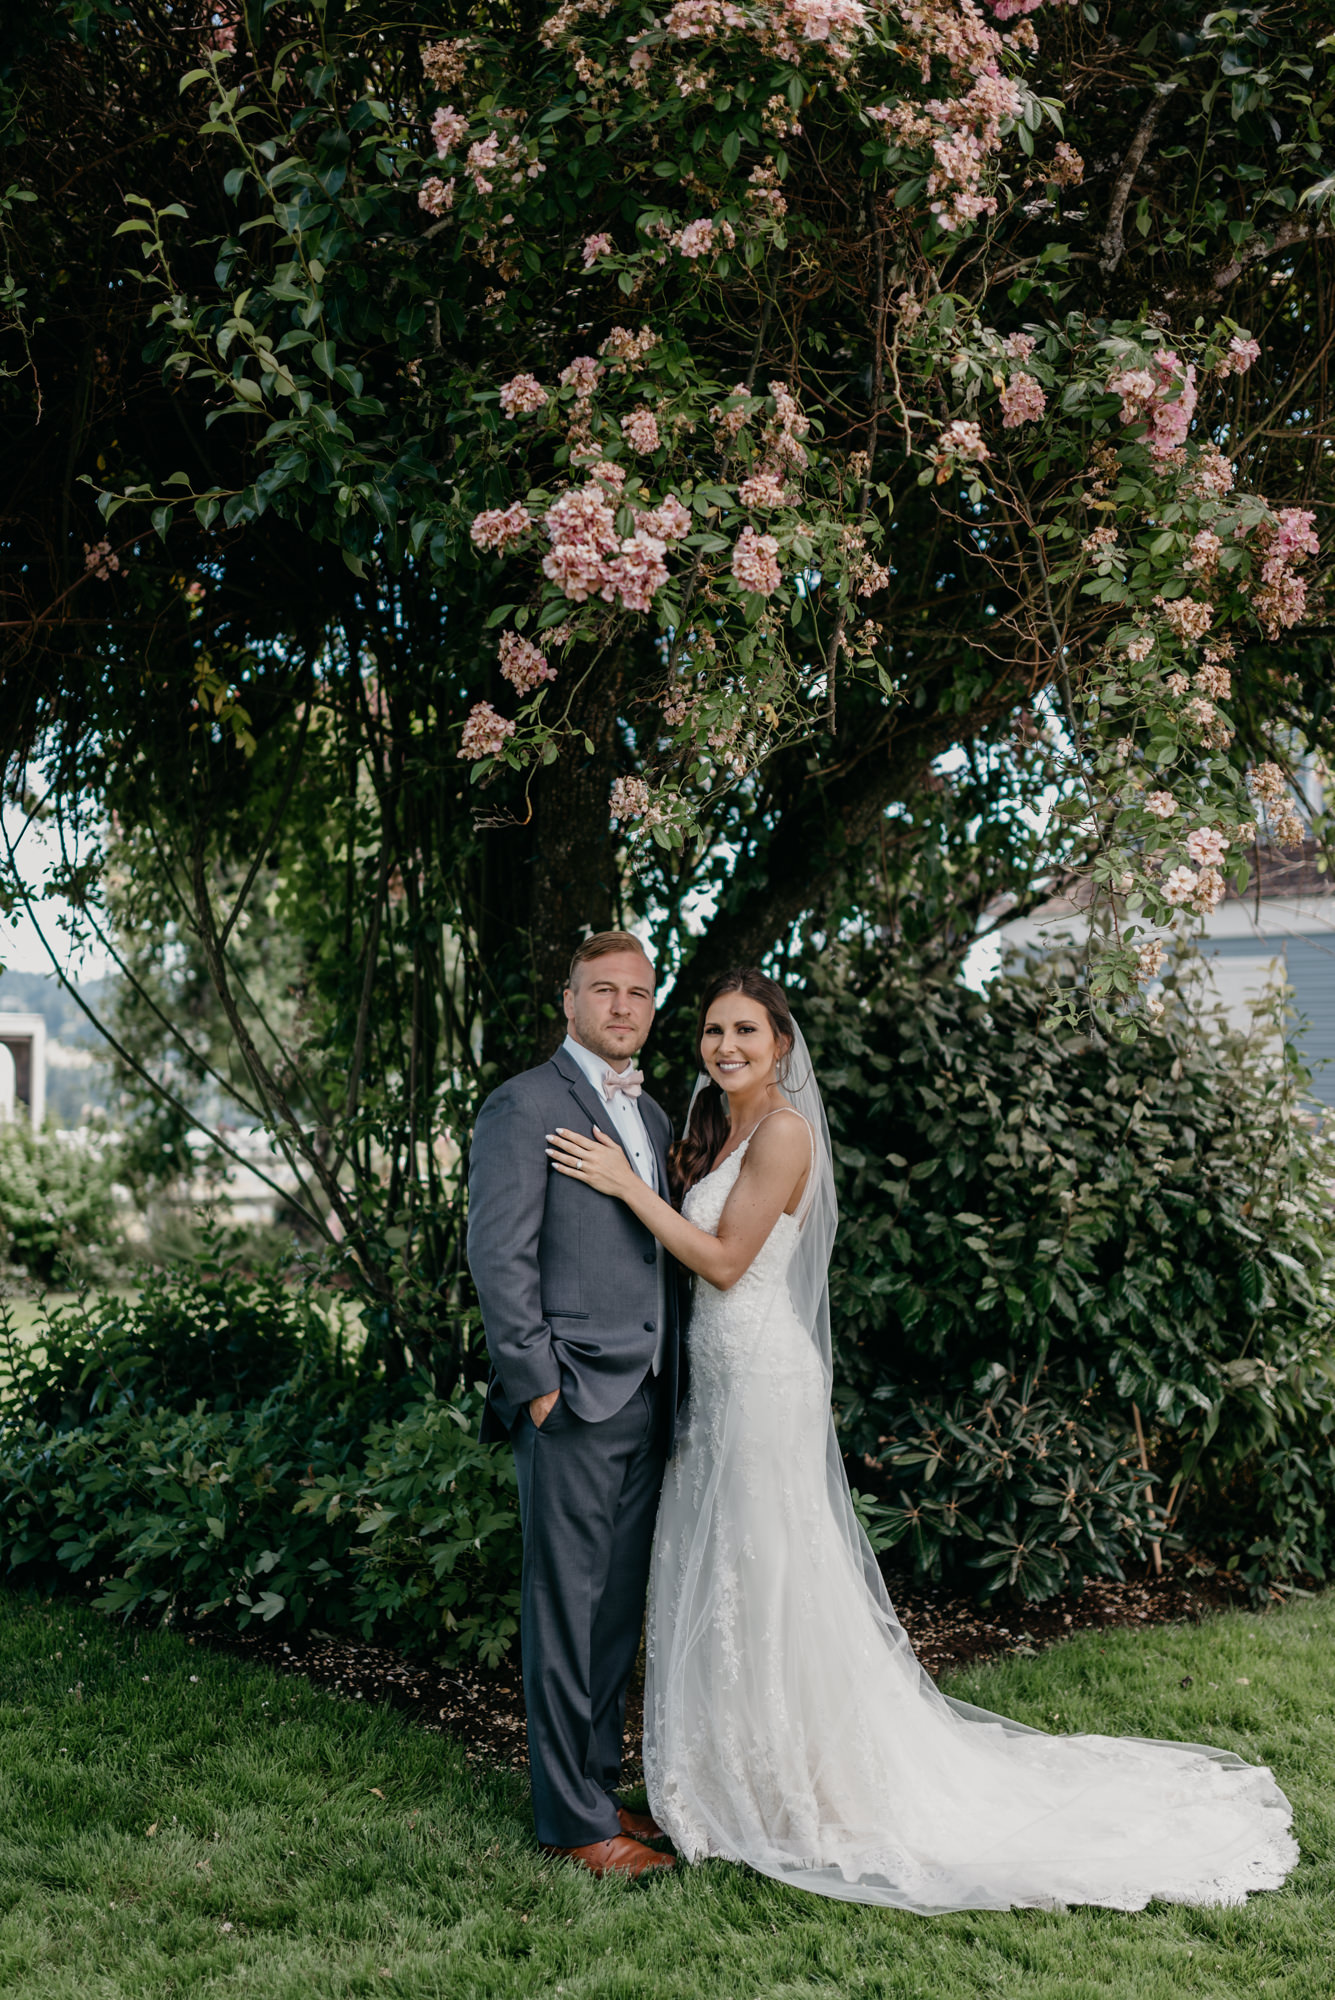 38-lake-oswego-wedding-portland-couple-rose-tree.jpg